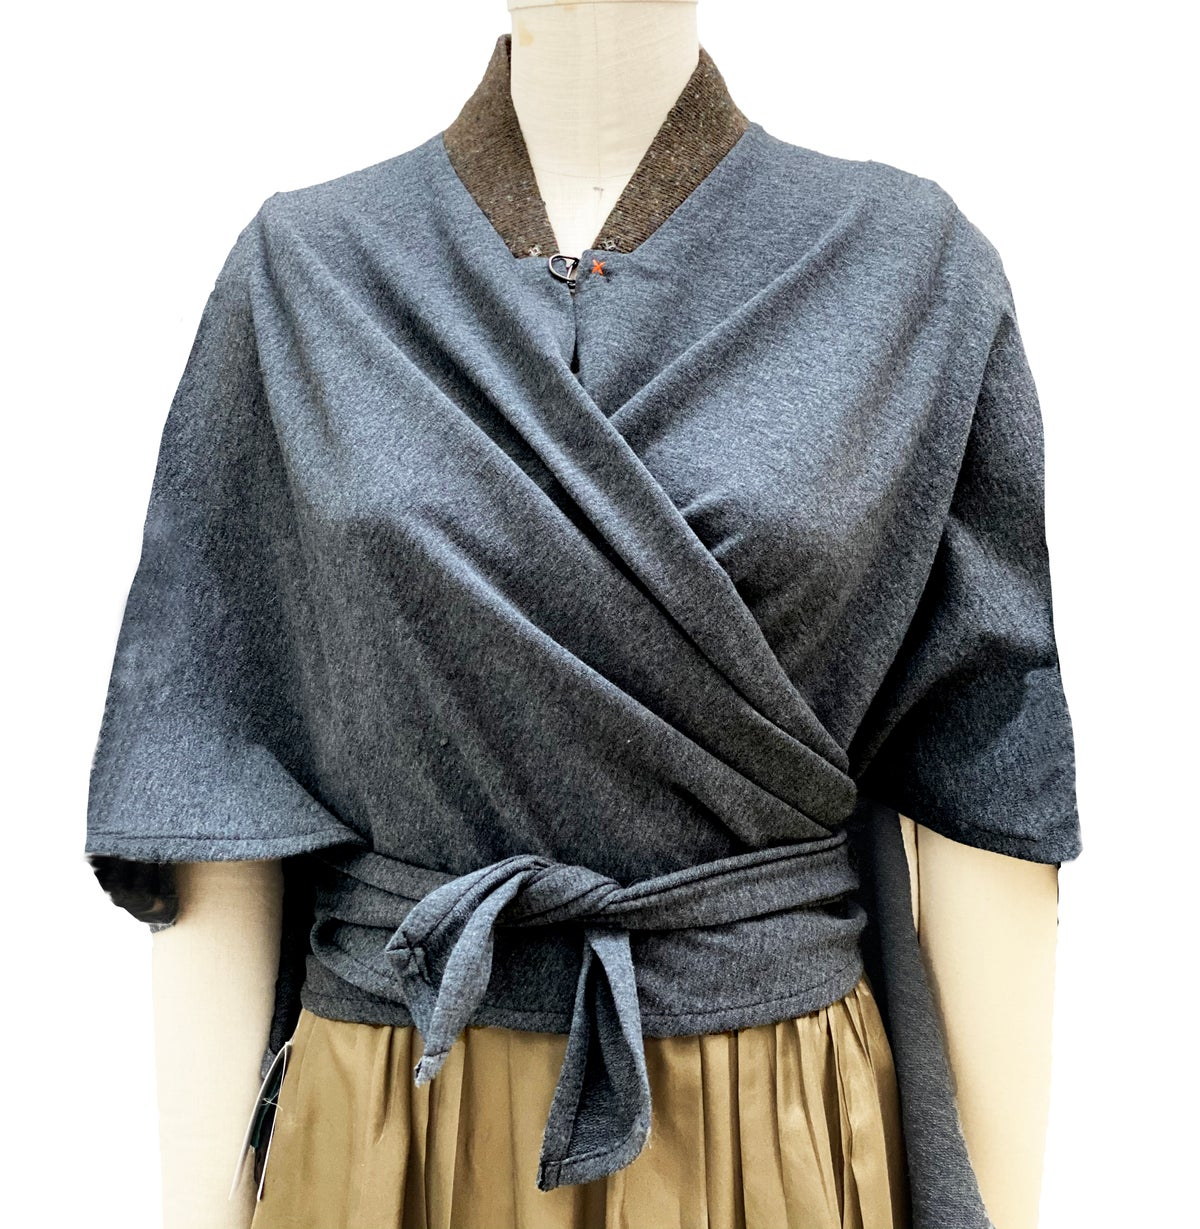 Image of gray wrap with removable shearling